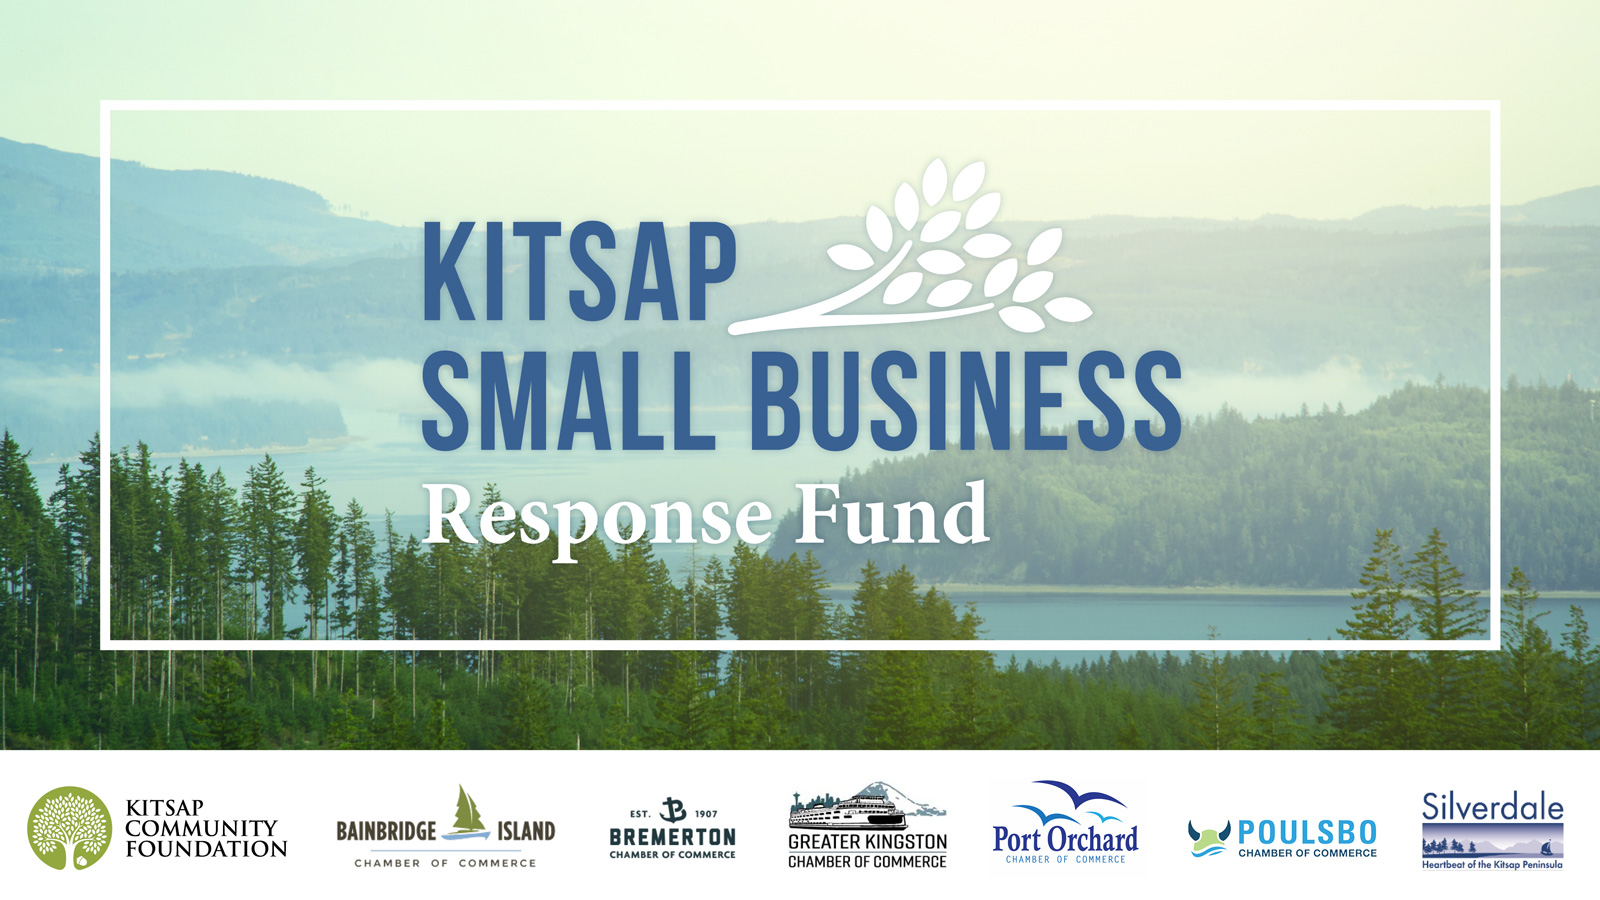 Kitsap Small Business Response Fund